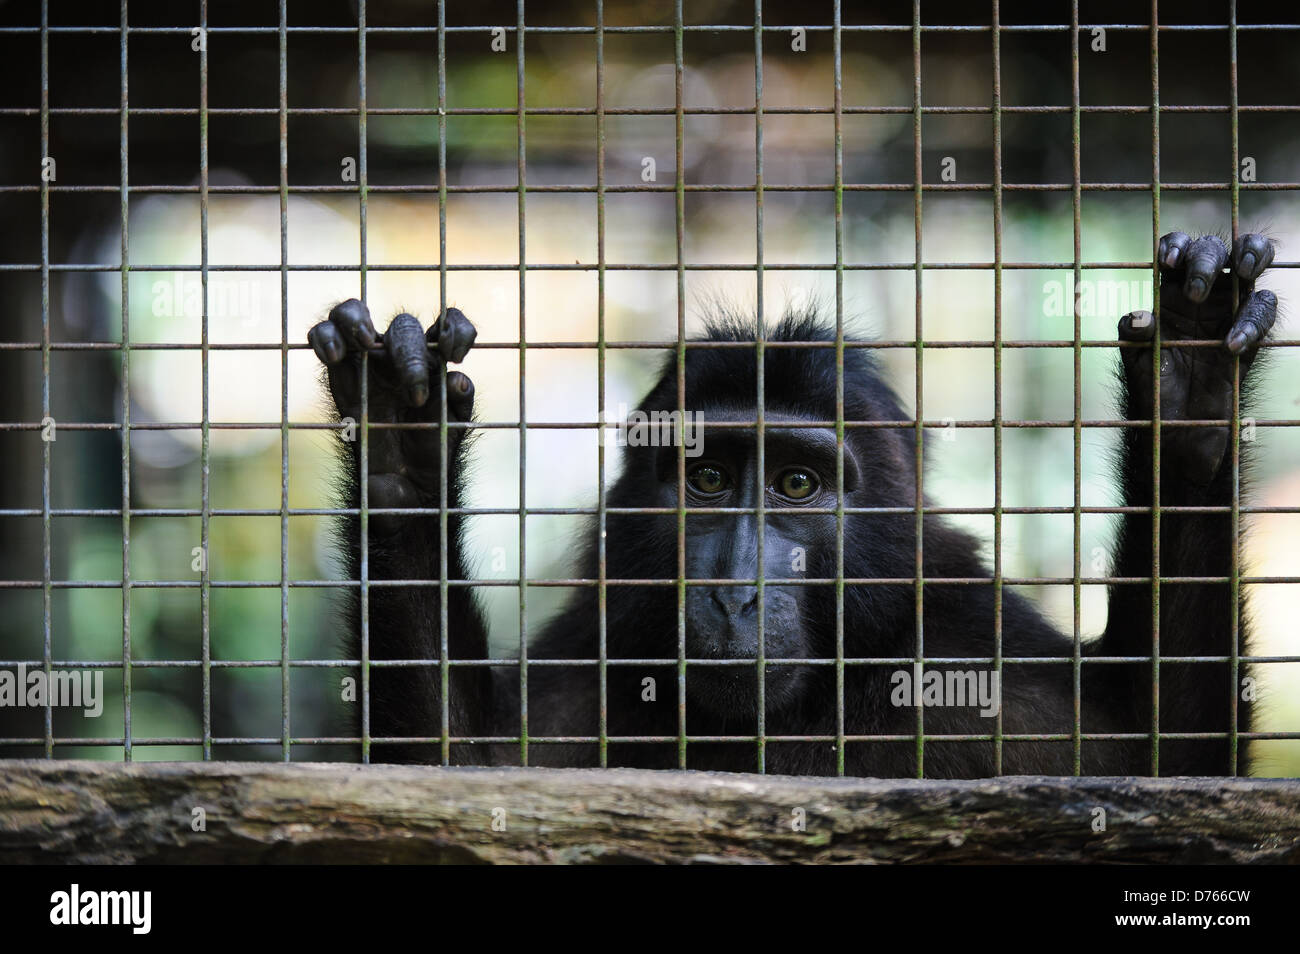 Celebes crested macaque at a rehabilitation centre, Sulawesi, Indonesia. - Stock Image